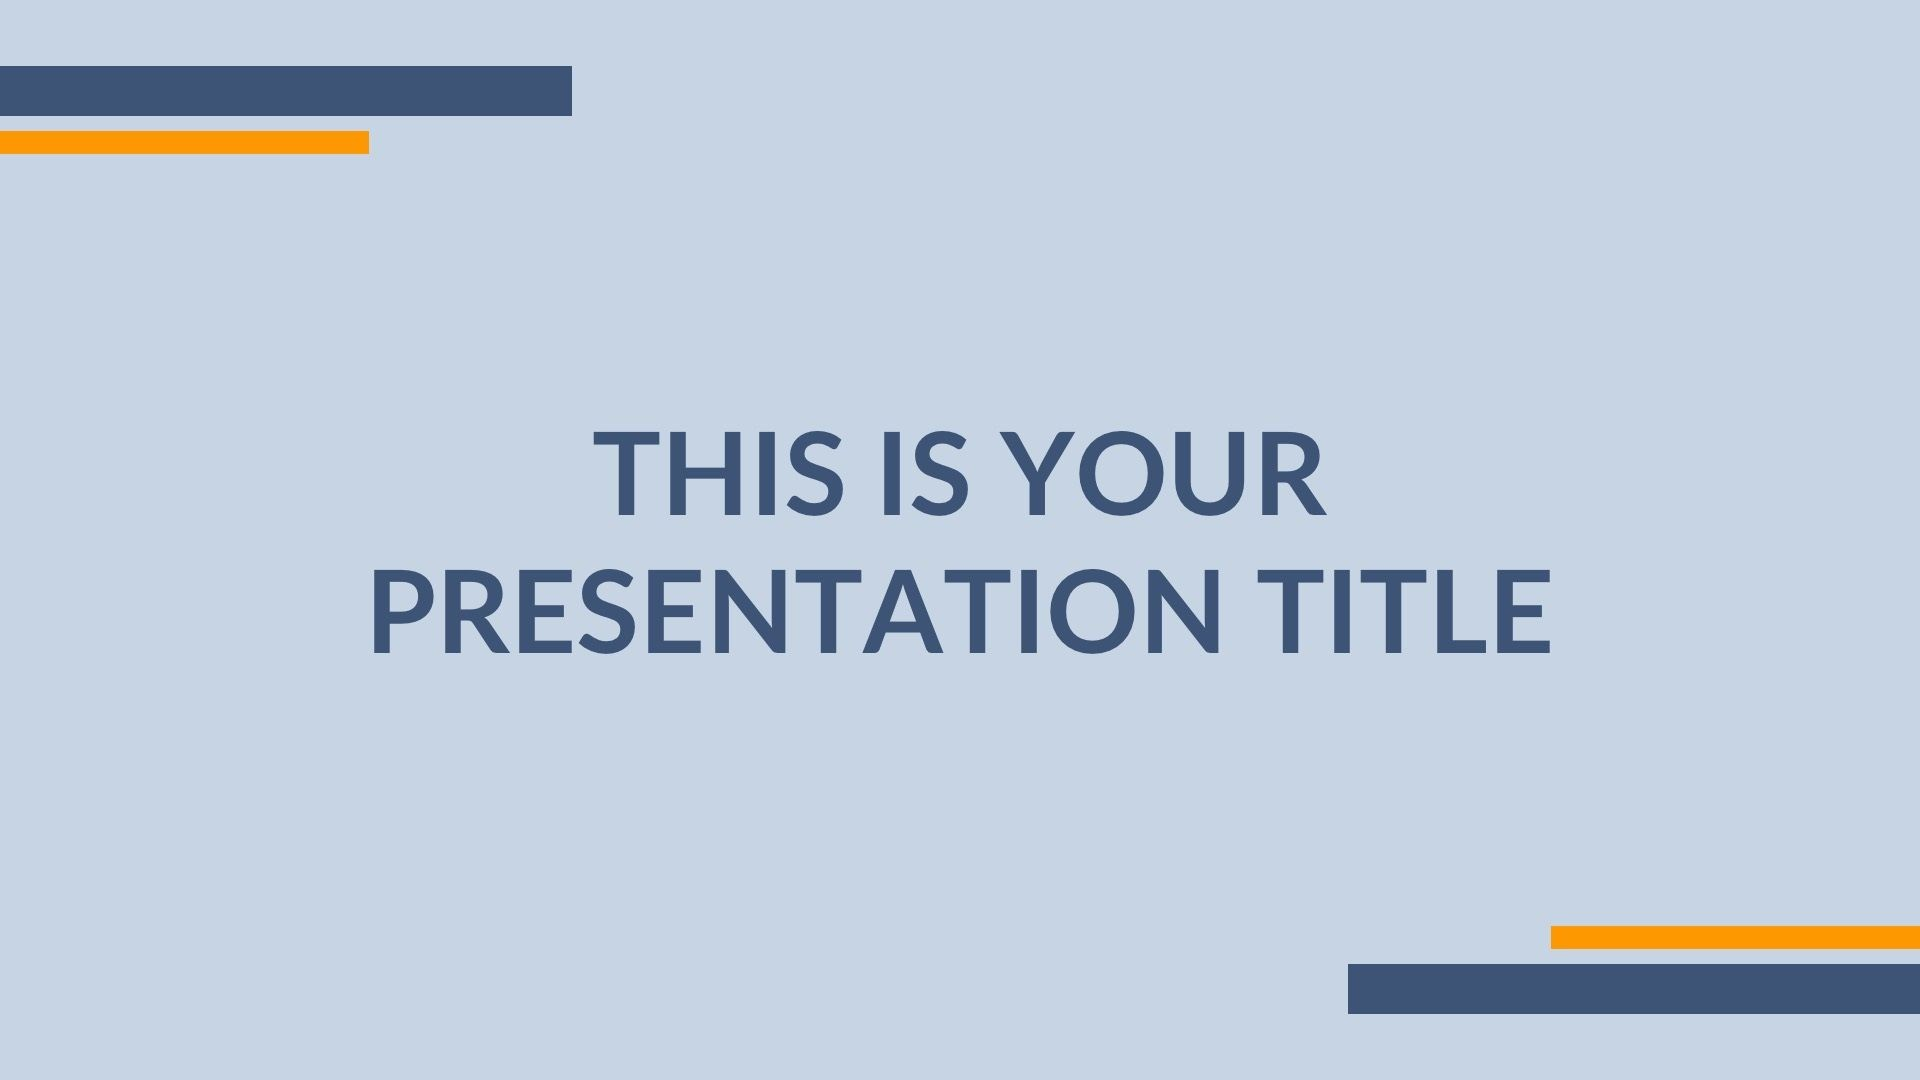 005 Impressive Simple Ppt Template Free Download For Project Presentation Idea 1920